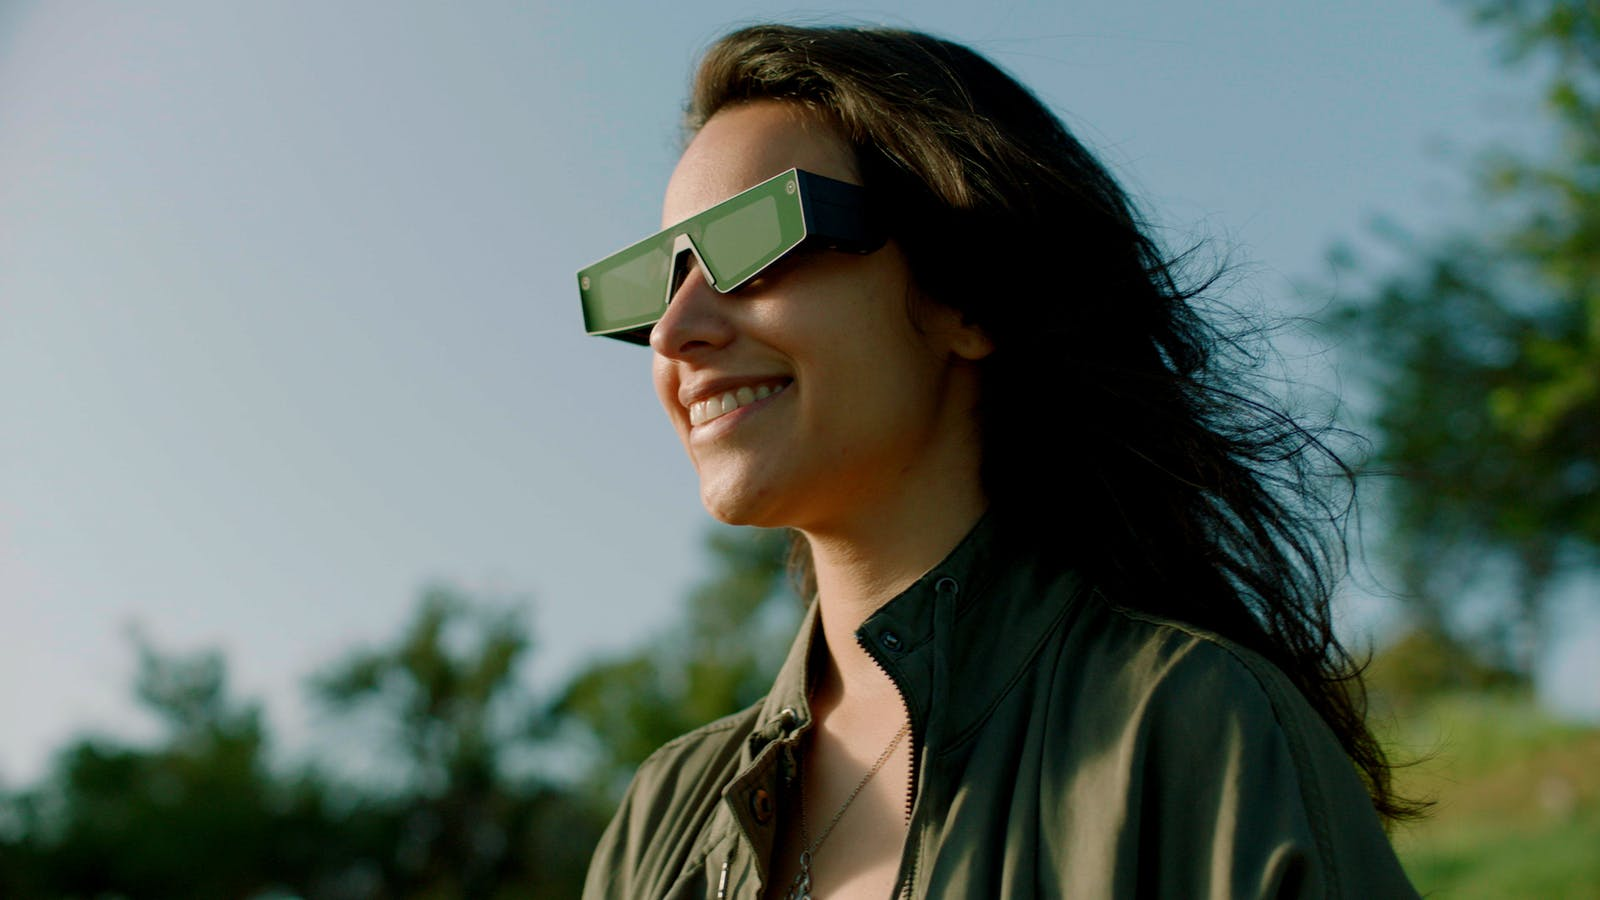 Kat Harris, a developer, wearing Snap's AR Spectacles. Photo by Snap